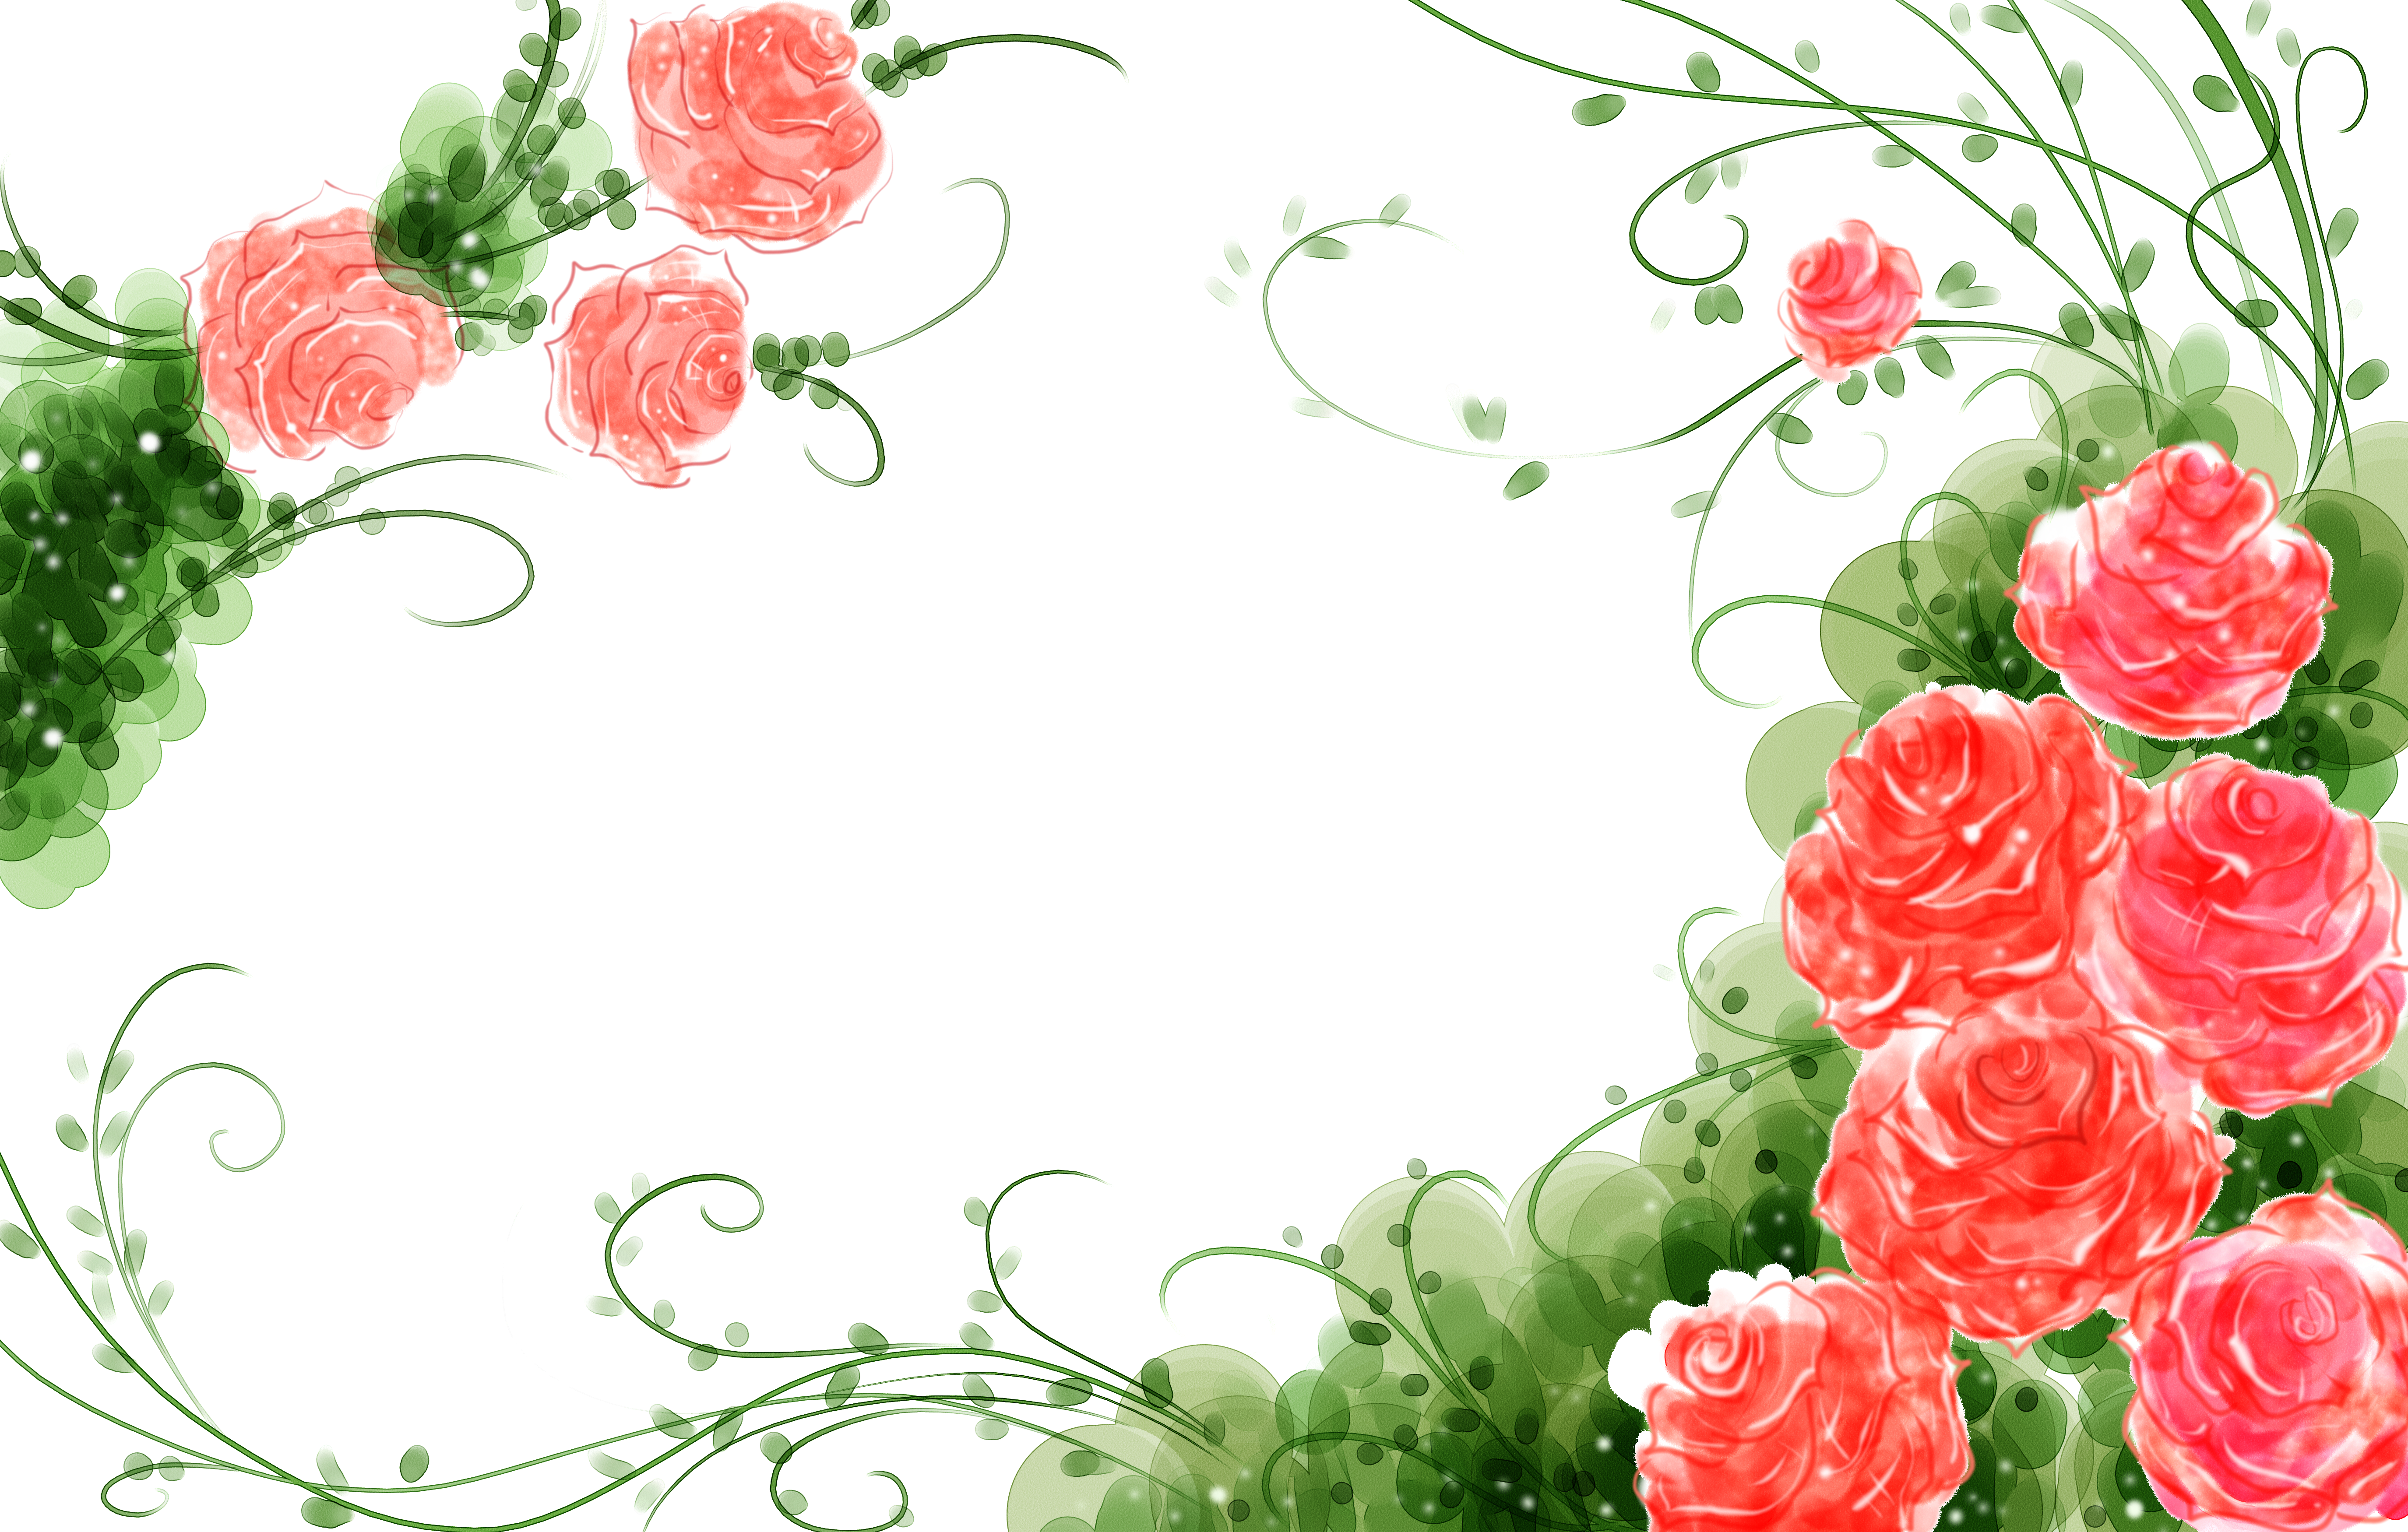 Lime green rose with heart clipart jpg freeuse download Garden roses Flower Watercolor painting Illustration - Watercolor ... jpg freeuse download